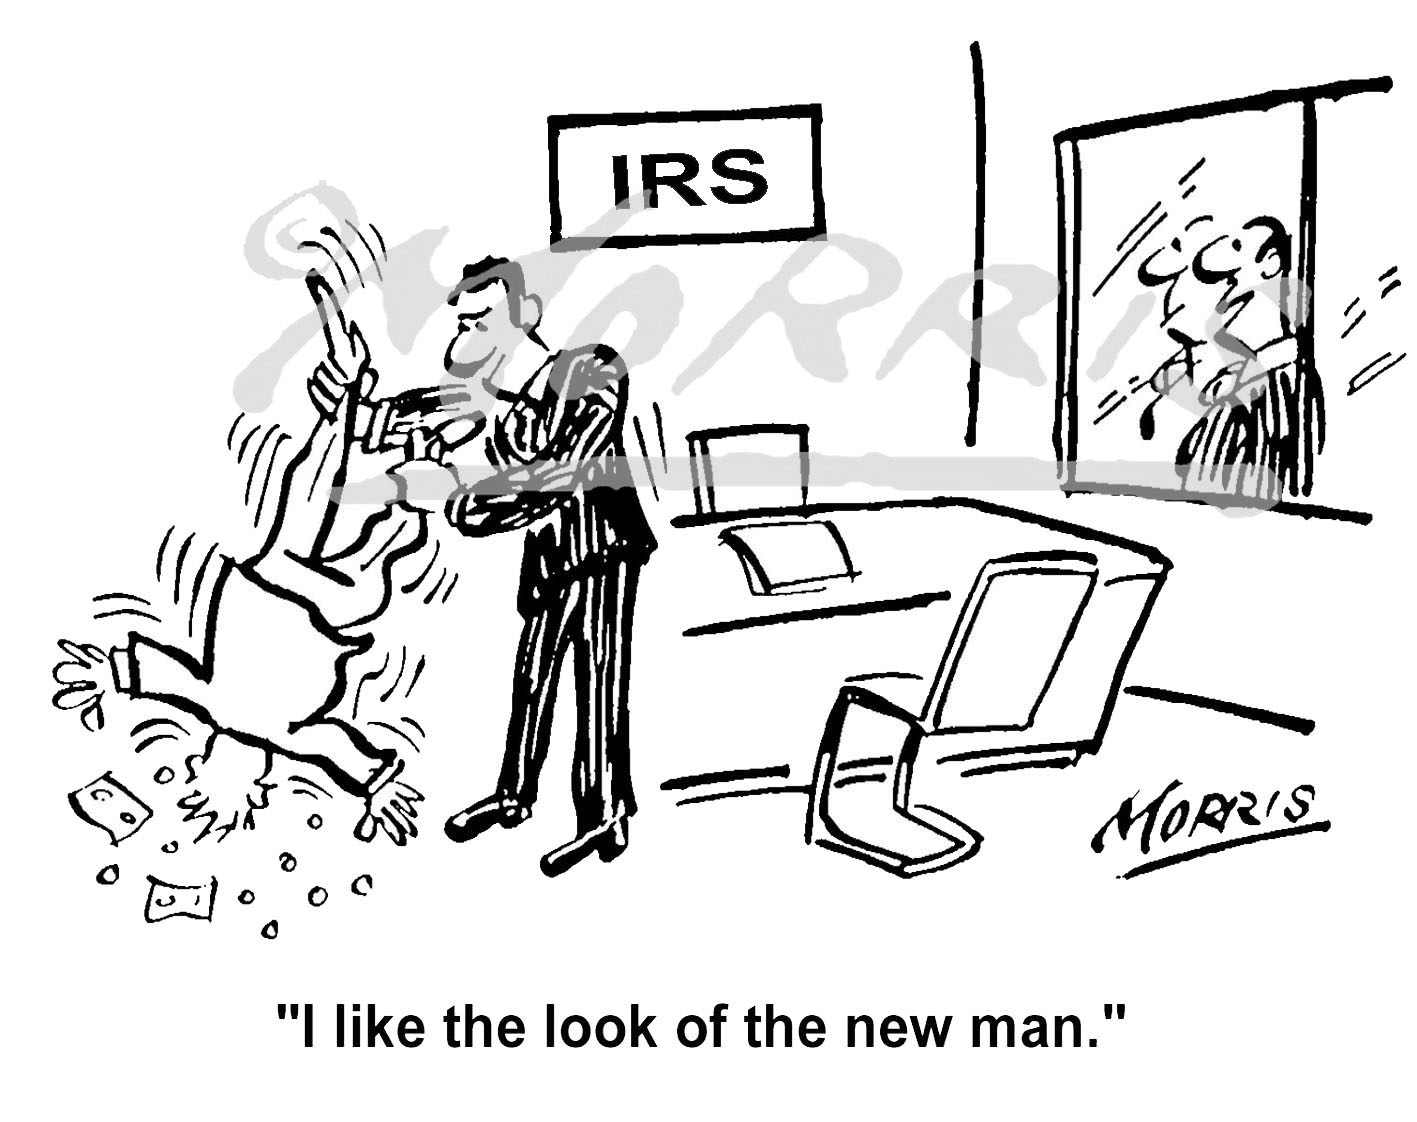 IRS comic cartoon Ref: 1652bwus